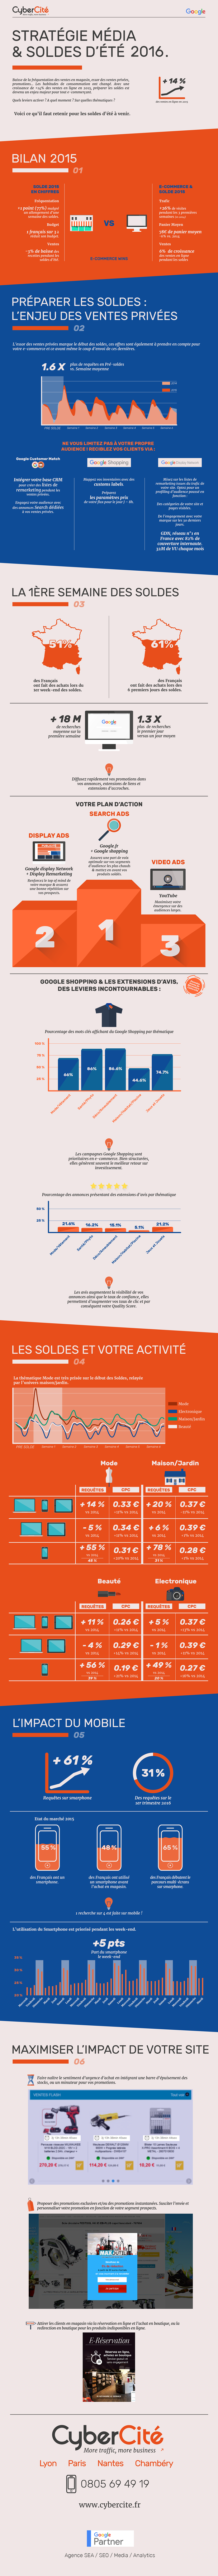 infographie-seo-solde-ete-2016